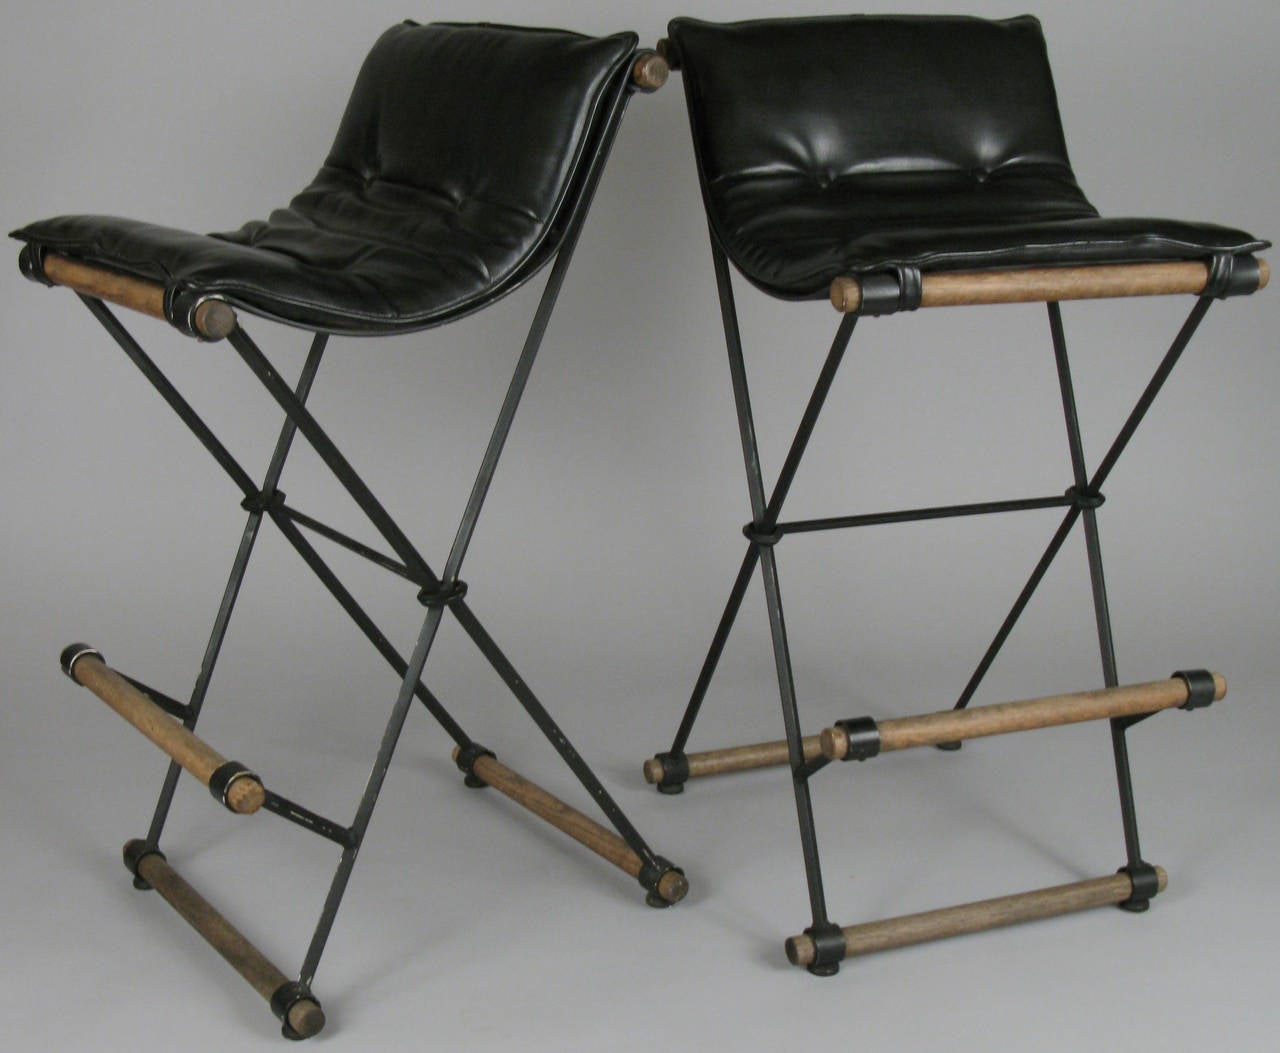 A pair of Classic 1970s iron X-frame Campaign barstools by California designer Cleo Baldon, with oak stretchers and button tufted upholstered seat cushions.